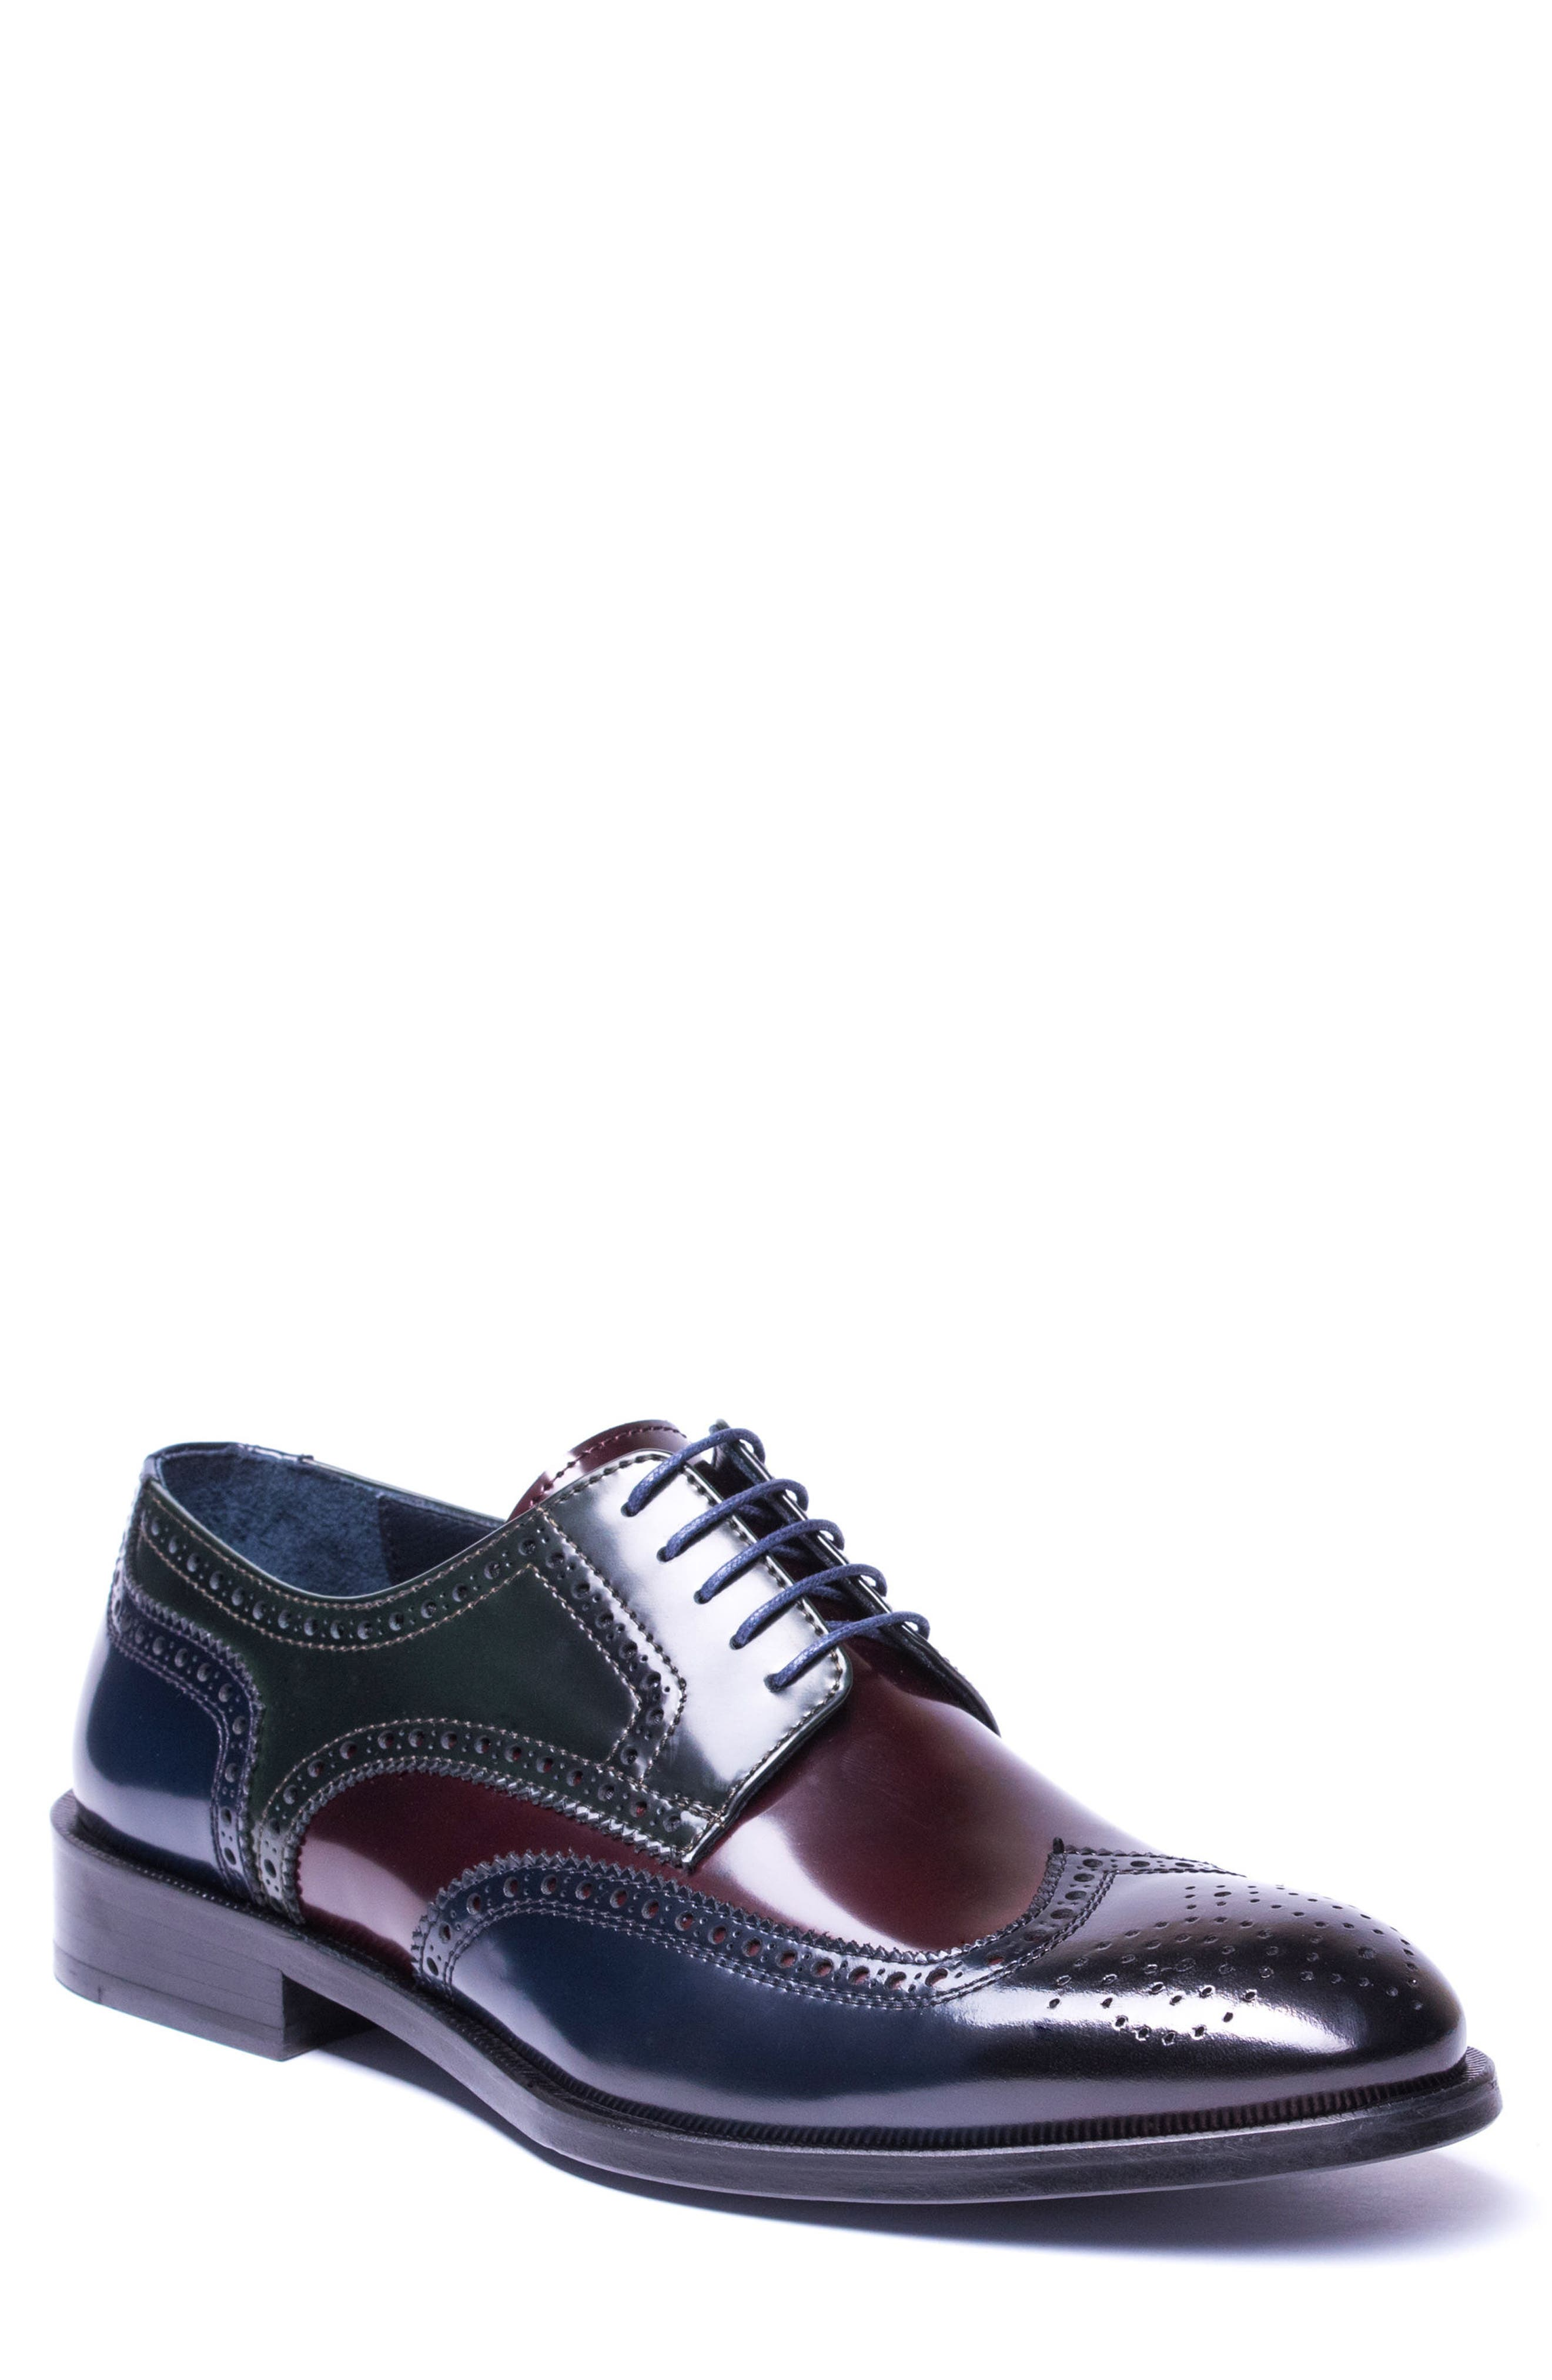 Bryce Wingtip Derby,                         Main,                         color, BROWN/ BLUE LEATHER